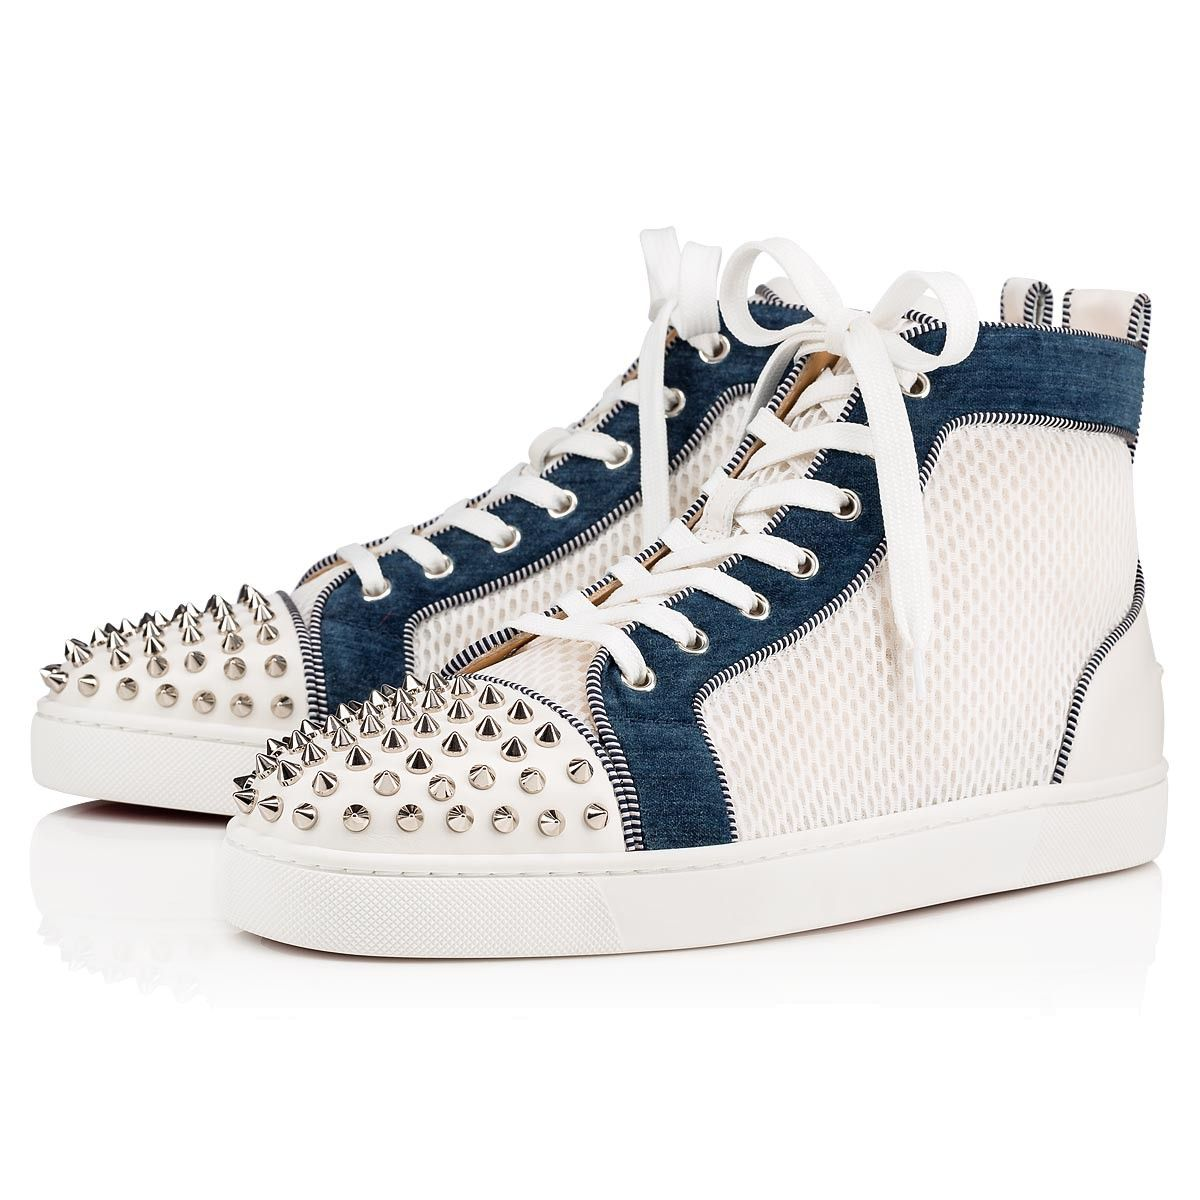 Lou Spikes Orlato Version natural Fabric and Calfskin Men